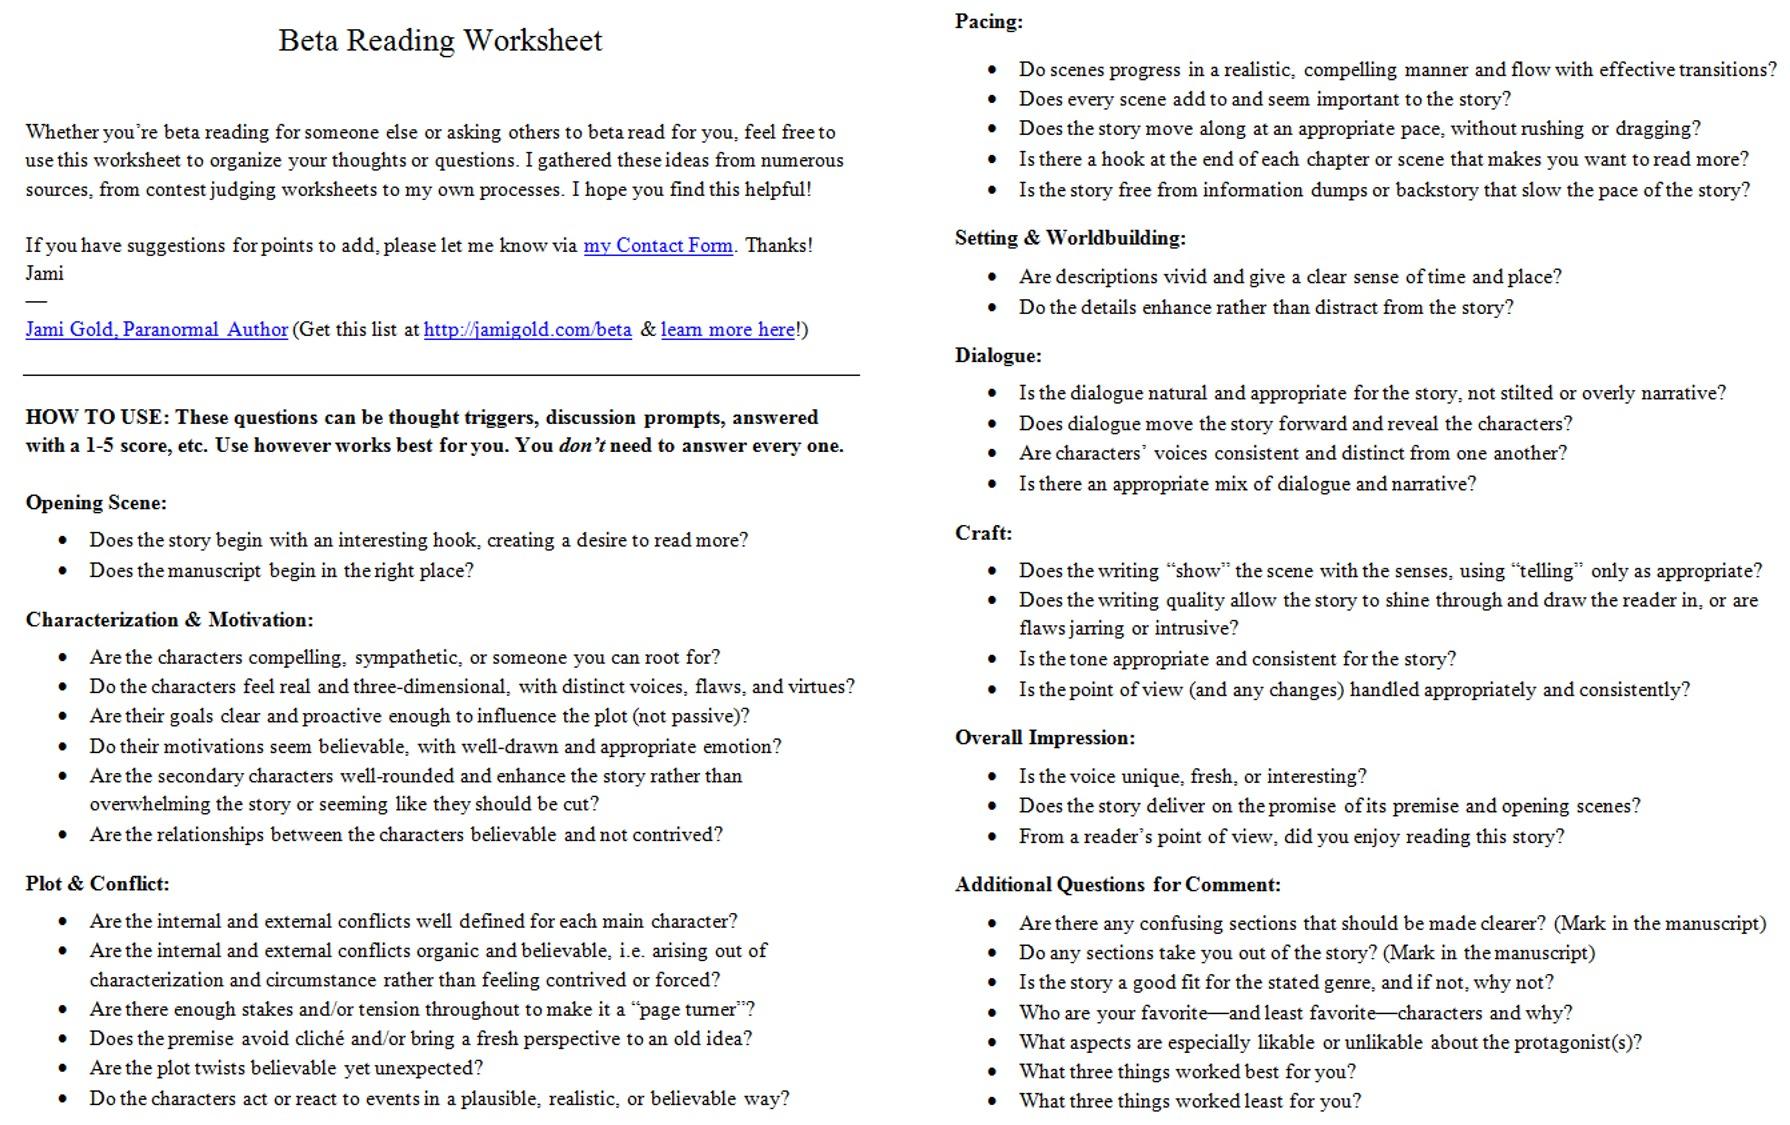 Aldiablosus  Pleasing Worksheets For Writers  Jami Gold Paranormal Author With Glamorous Screen Shot Of The Twopage Beta Reading Worksheet With Adorable Gram Formula Mass Worksheet Also Equivalent Fractions On A Number Line Worksheet In Addition Cladogram Practice Worksheet And Characteristics Of Living Things Worksheet As Well As Quadrilateral Worksheets Additionally Dimensional Analysis Problems Worksheet Answers From Jamigoldcom With Aldiablosus  Glamorous Worksheets For Writers  Jami Gold Paranormal Author With Adorable Screen Shot Of The Twopage Beta Reading Worksheet And Pleasing Gram Formula Mass Worksheet Also Equivalent Fractions On A Number Line Worksheet In Addition Cladogram Practice Worksheet From Jamigoldcom